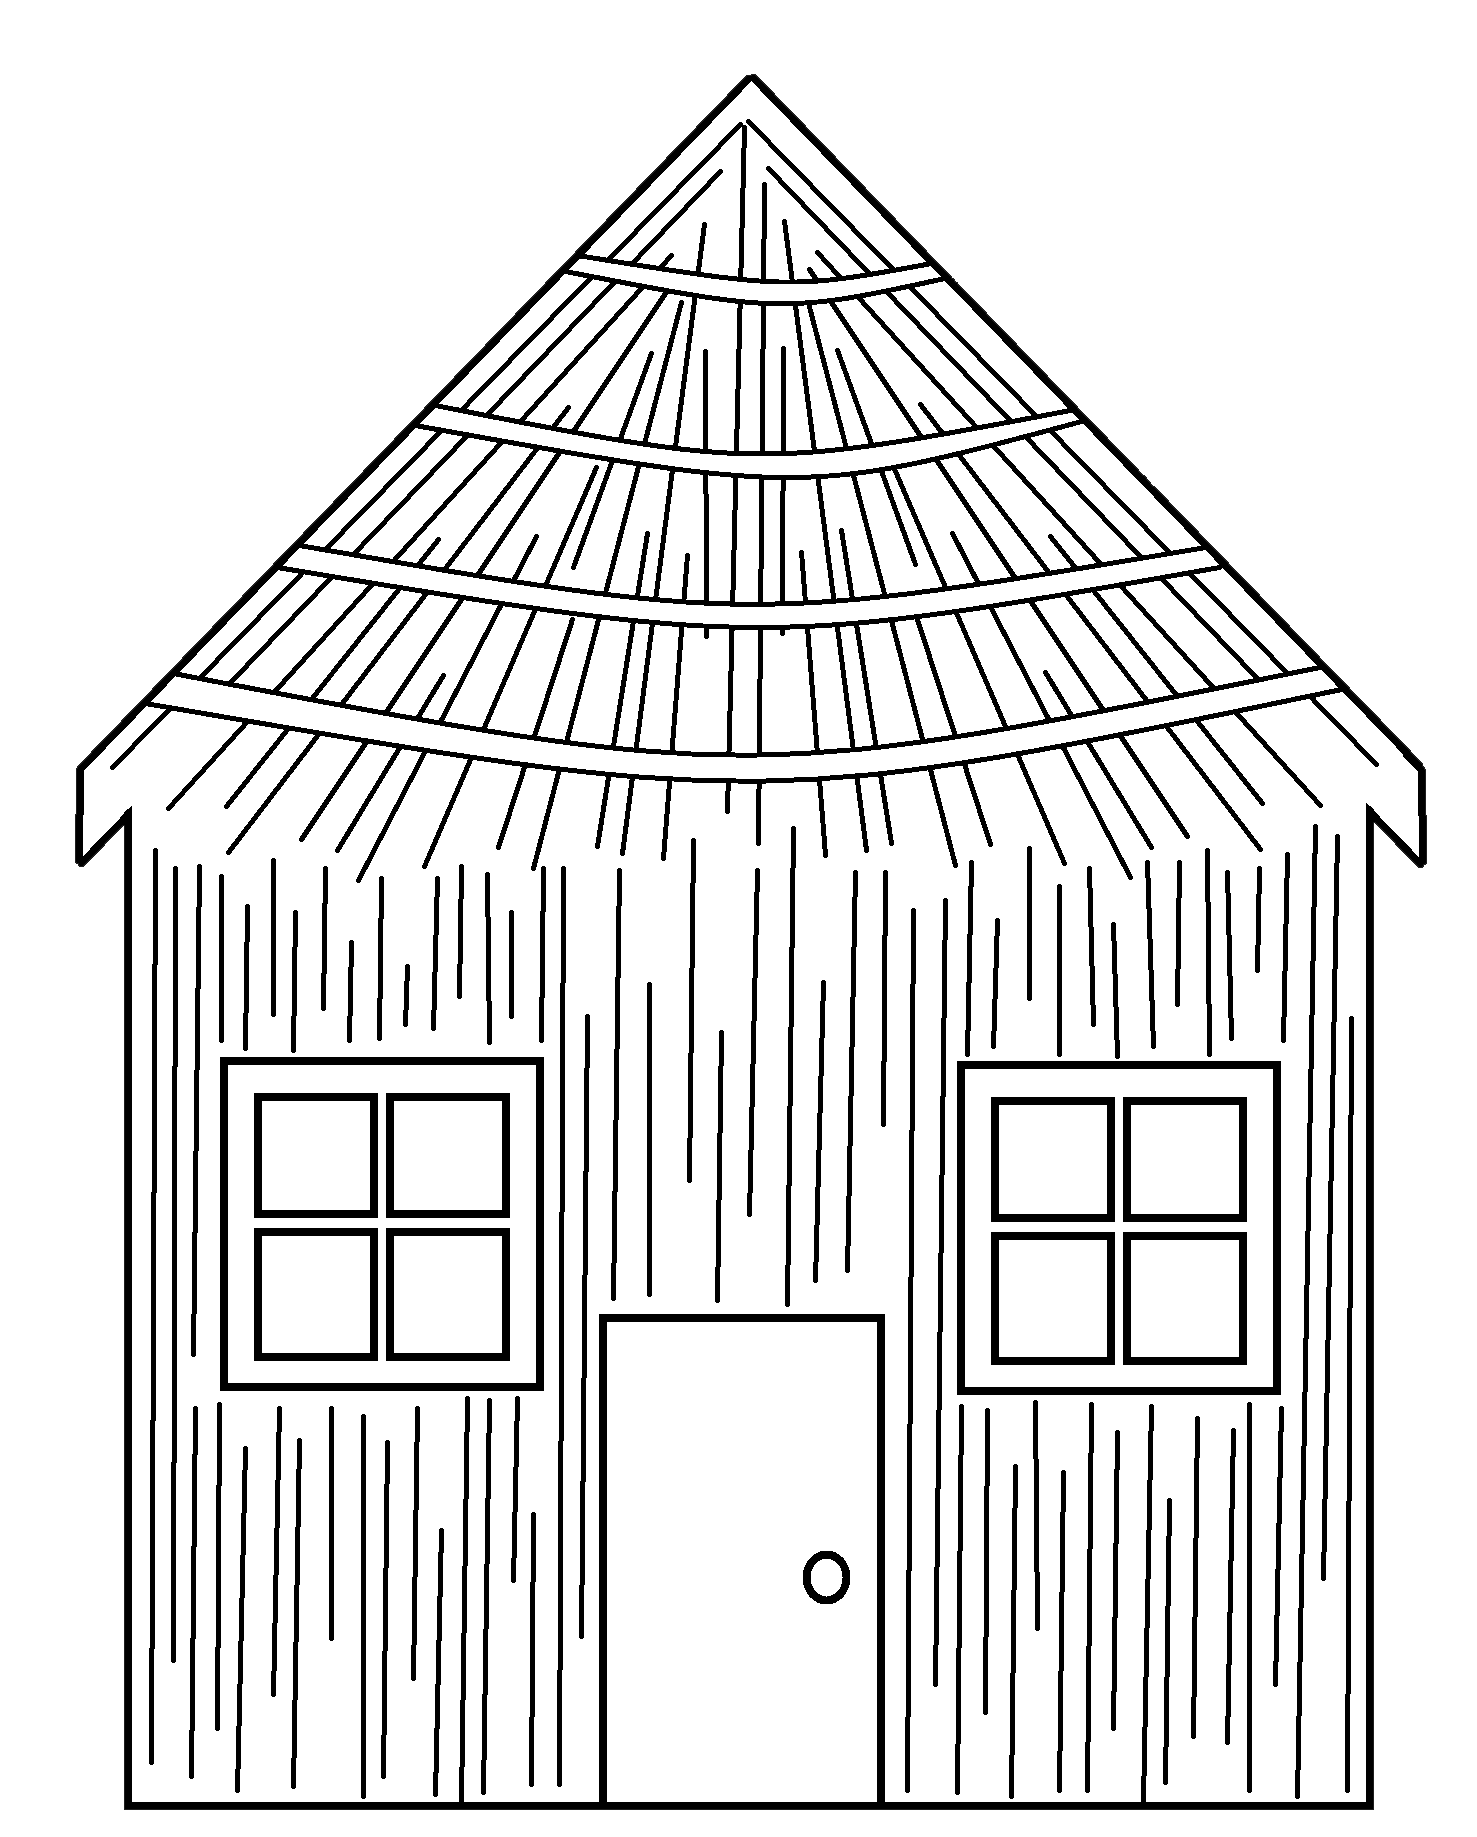 White House clipart stick house Cliparts Straw house Stick black